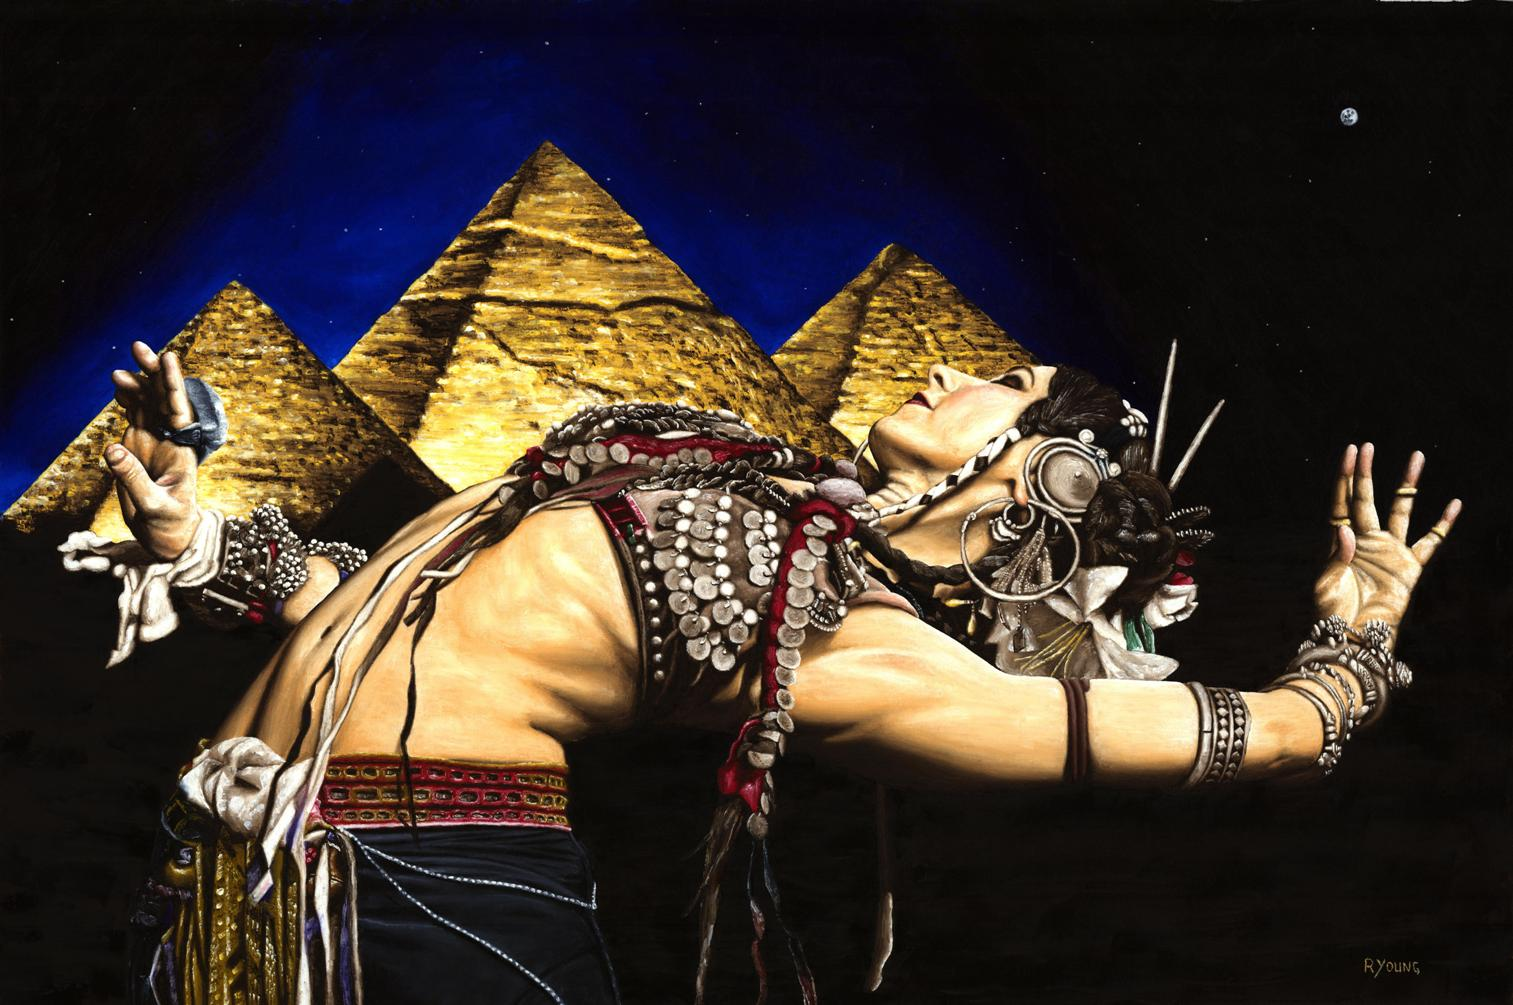 Dancers - Belly Dance Gallery. Bellydance of the Pyramids - Rachel Brice. Fine art original oil painting on a 91cm x 61cm stretched canvas created in 2007 using a knife. Produced in cooperation with Mark Rahmani and Rachel. Original available. Framed = £1,598